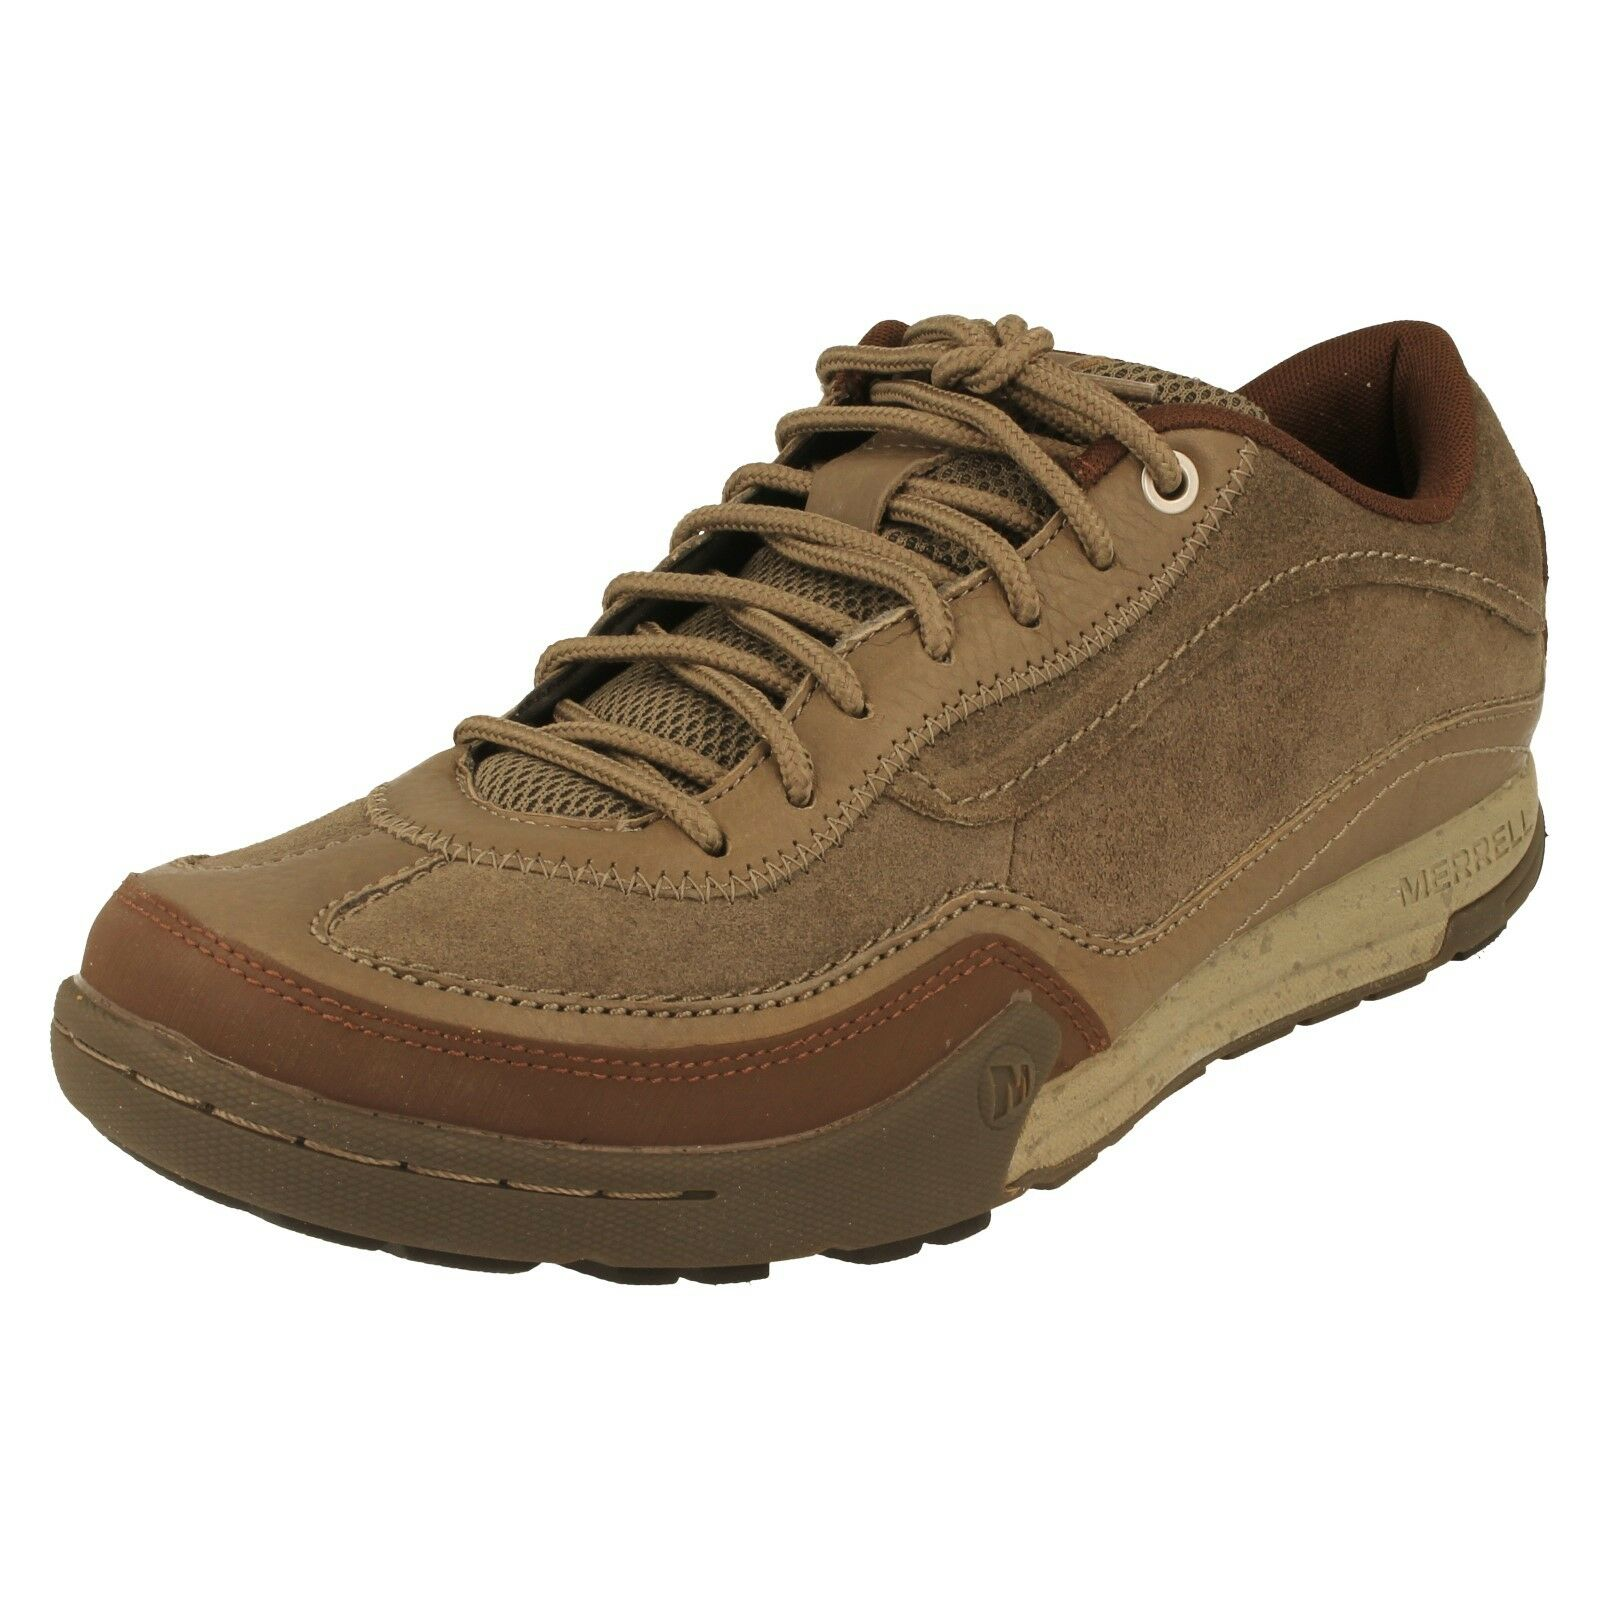 Homme Merrell - paniers Mountain Diggs J69199